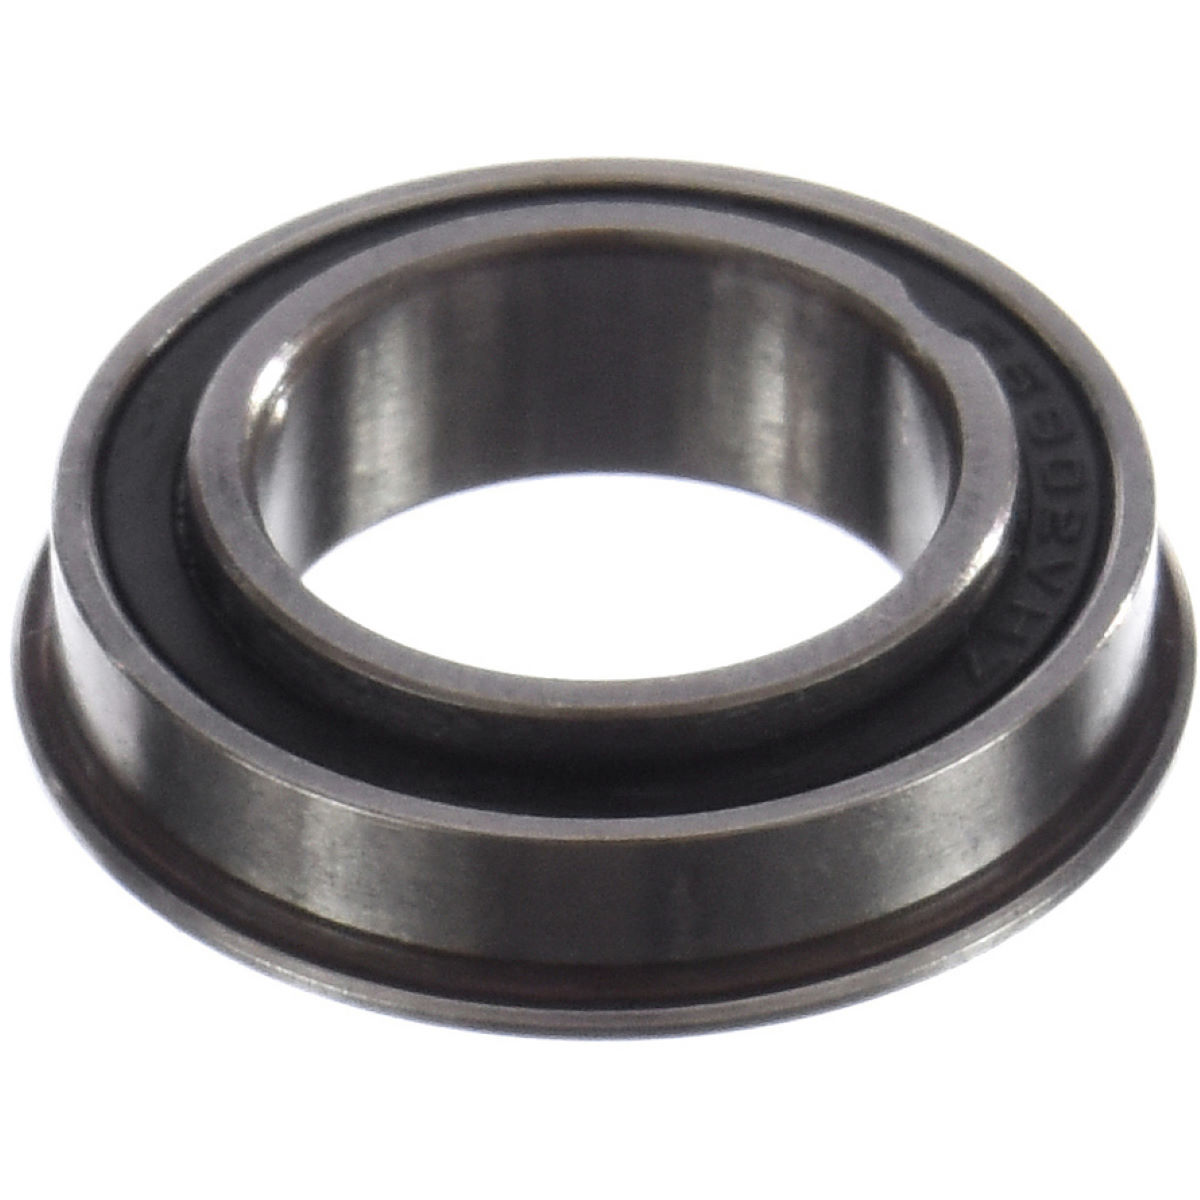 Brand-X Brand-X Sealed Bearing - Mega 61802-2RS1 Ext   Headsets